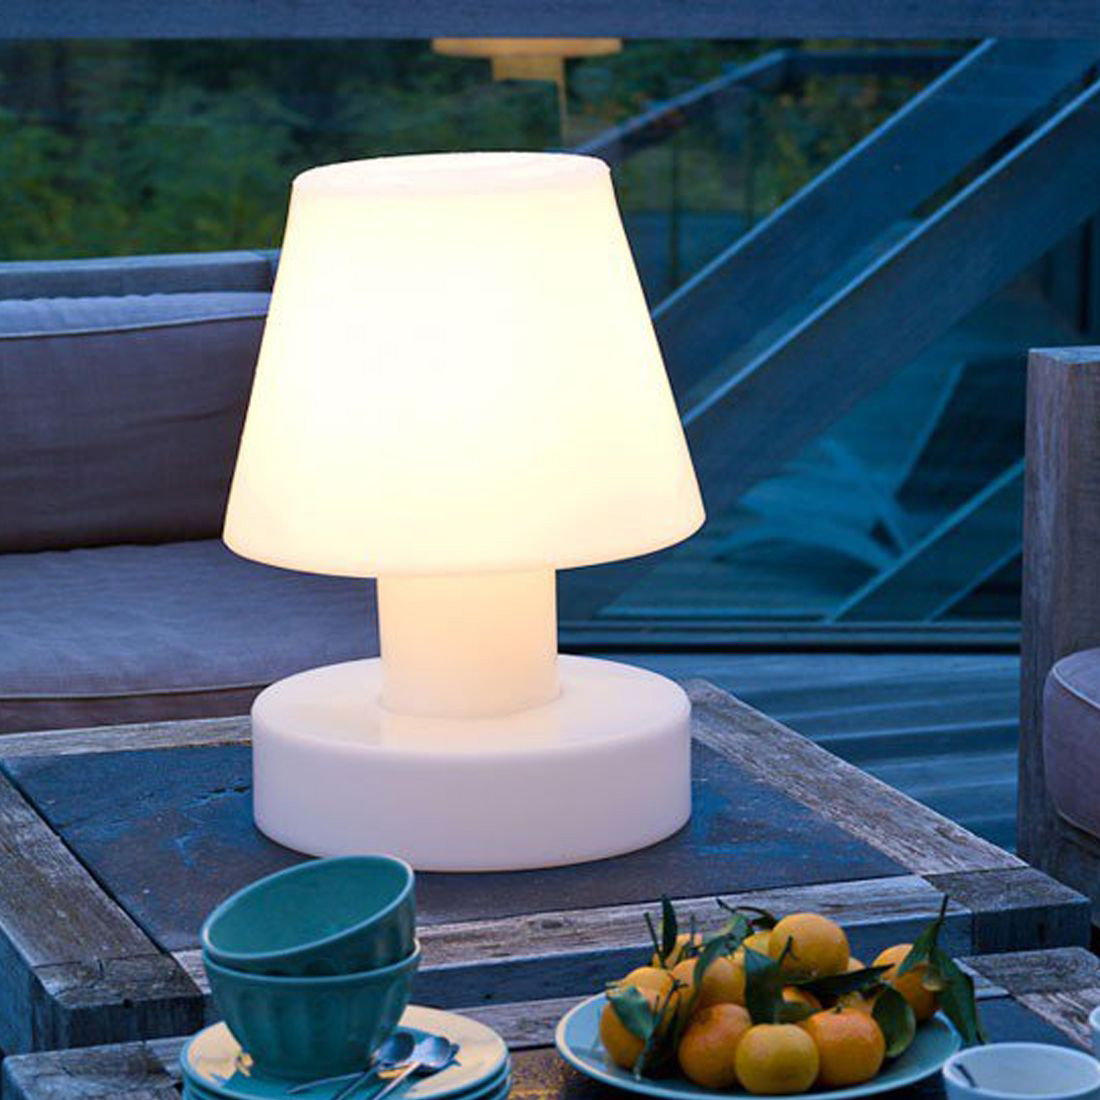 Zendart lampe de table lumineuse bloom deco maison design for Table exterieur lumineuse